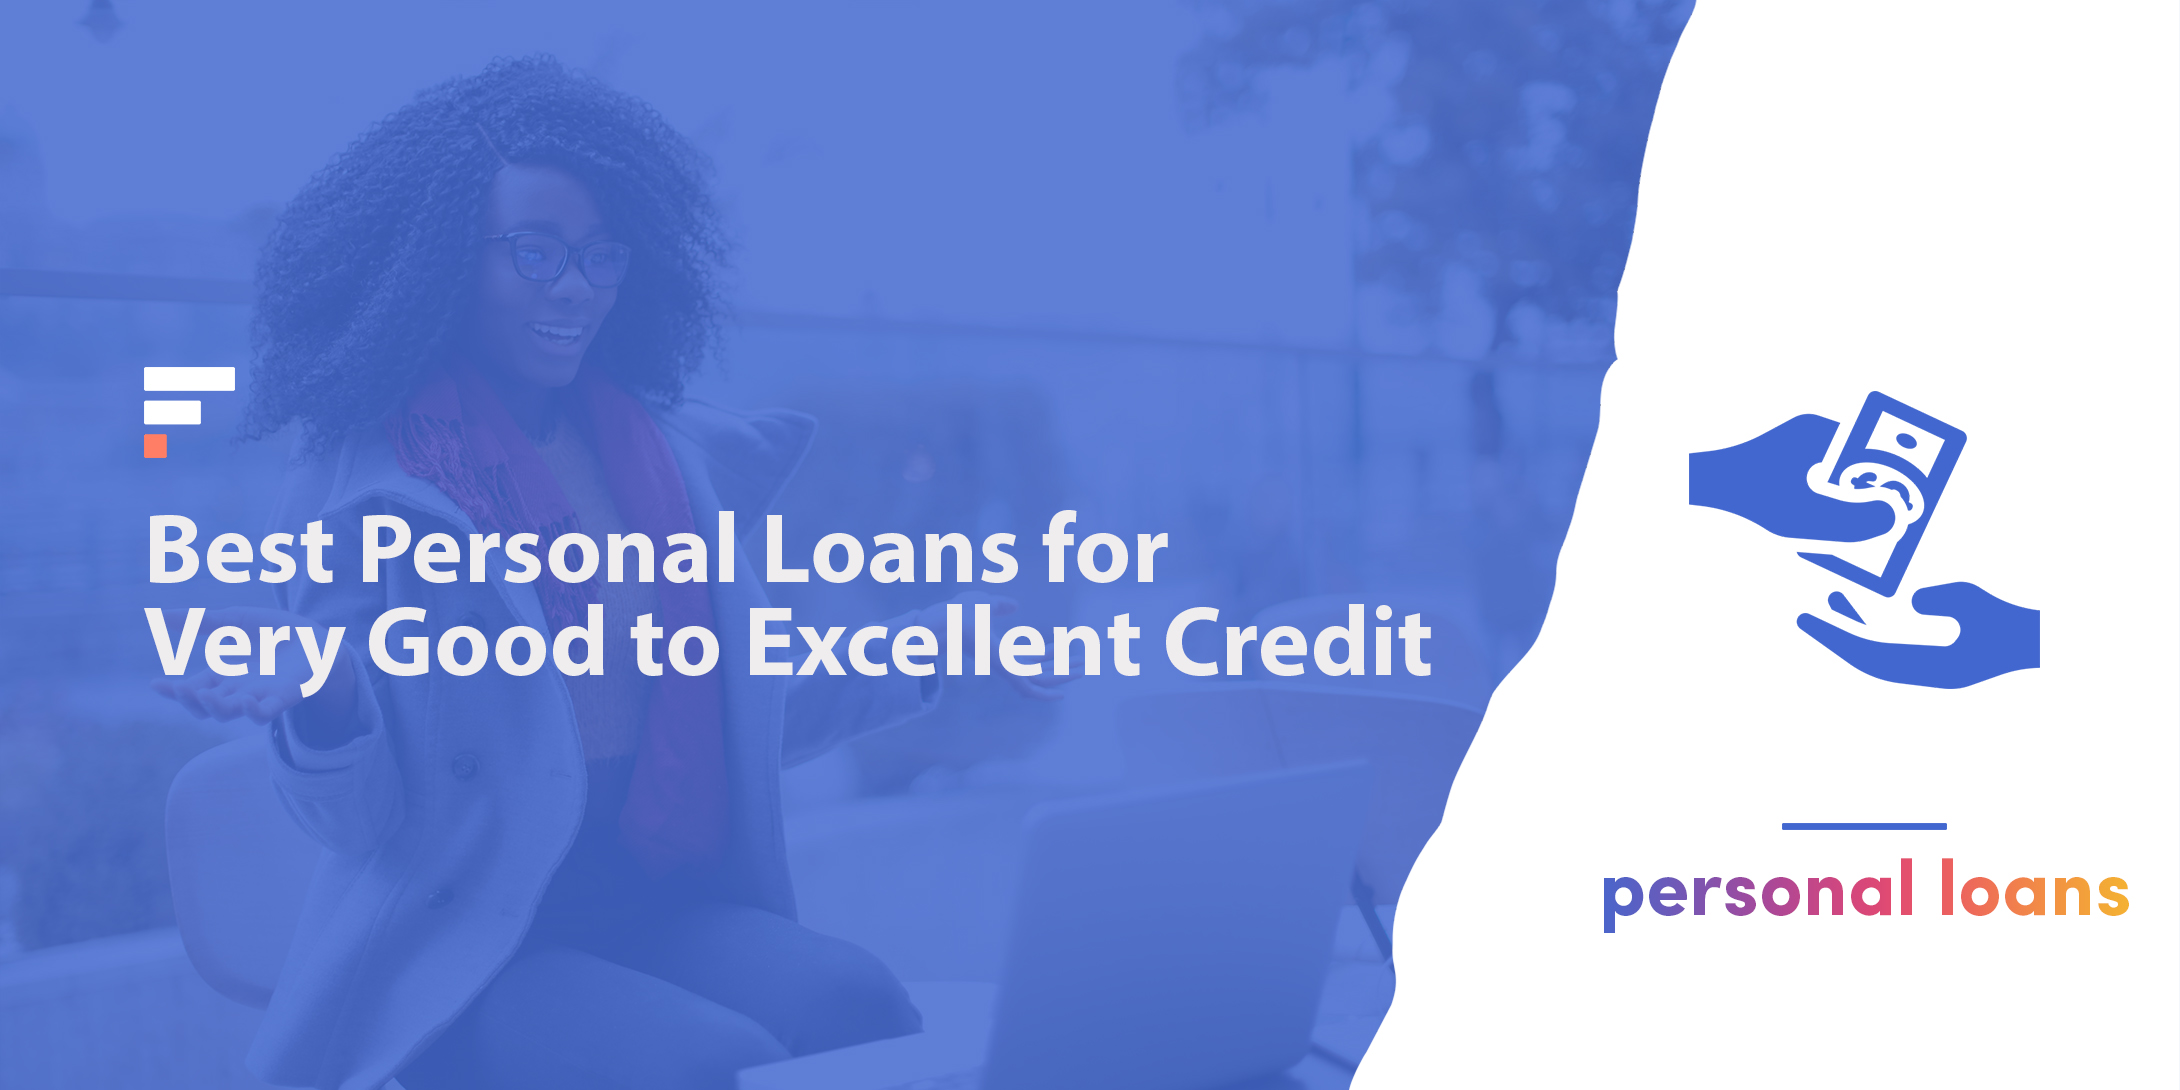 Best personal loans for very good to excellent credit